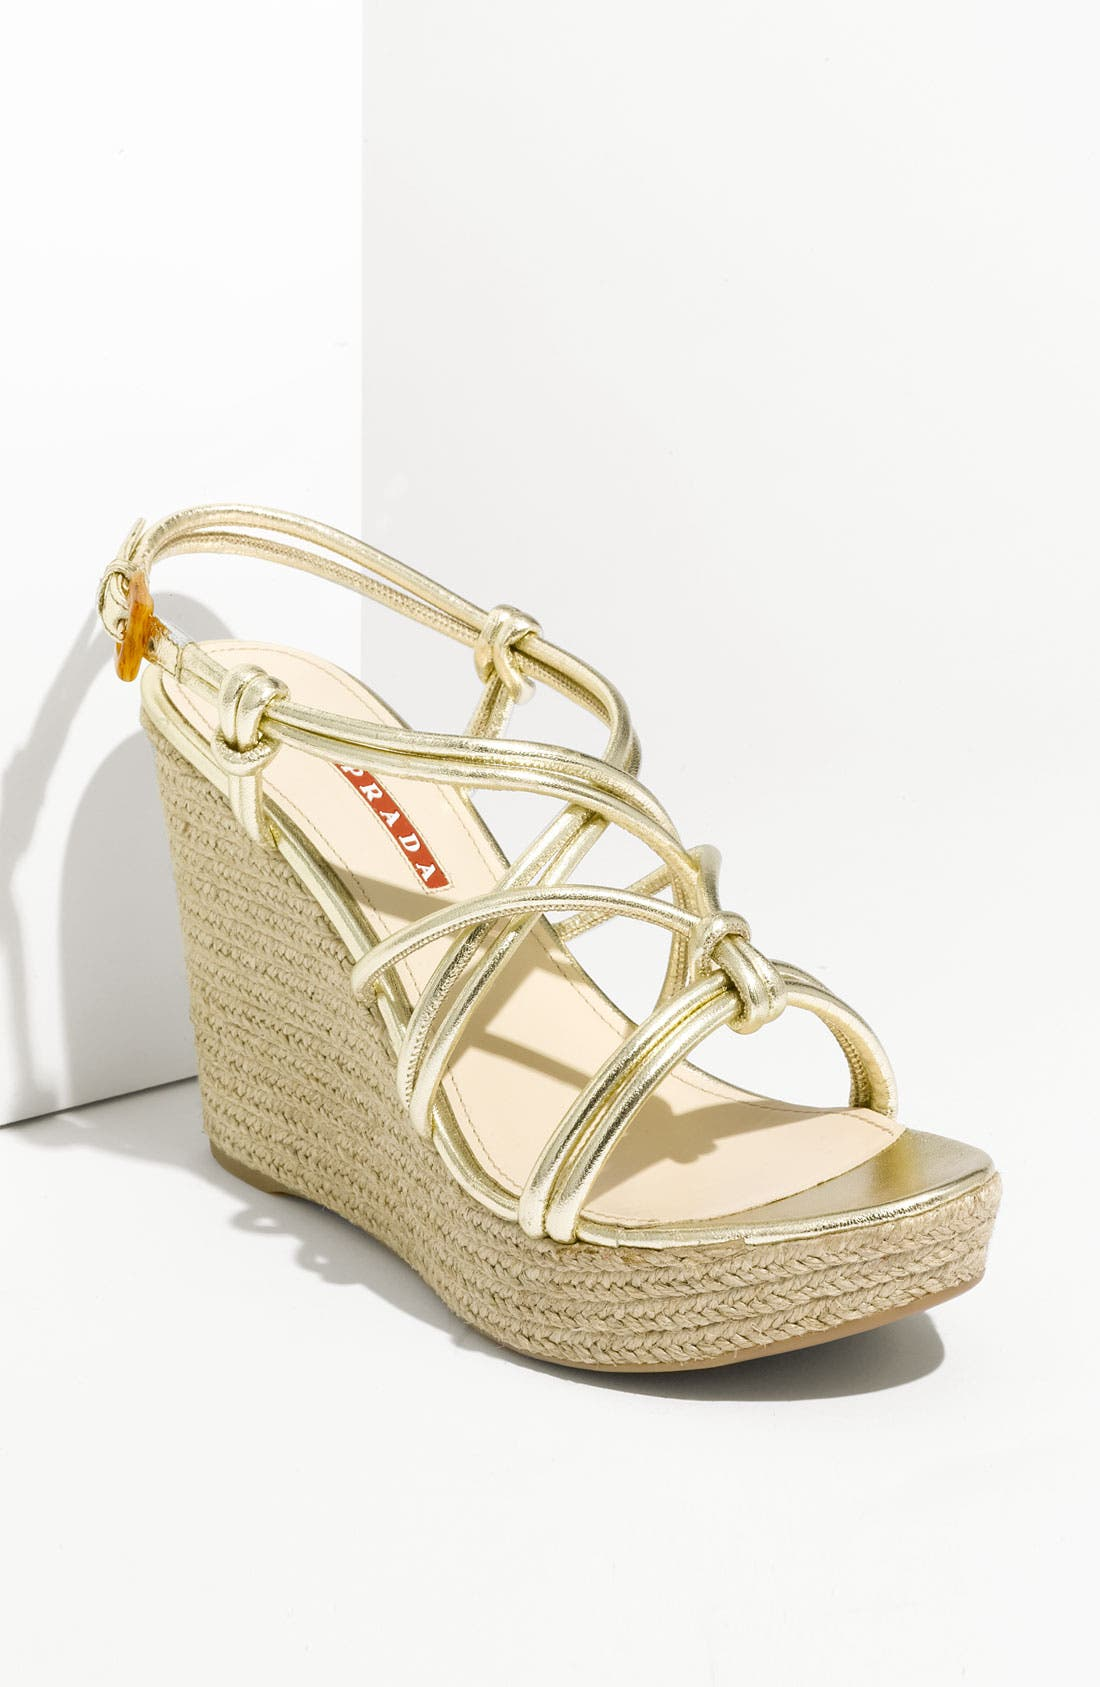 Alternate Image 1 Selected - Prada Tubular Strap Wedge Sandal